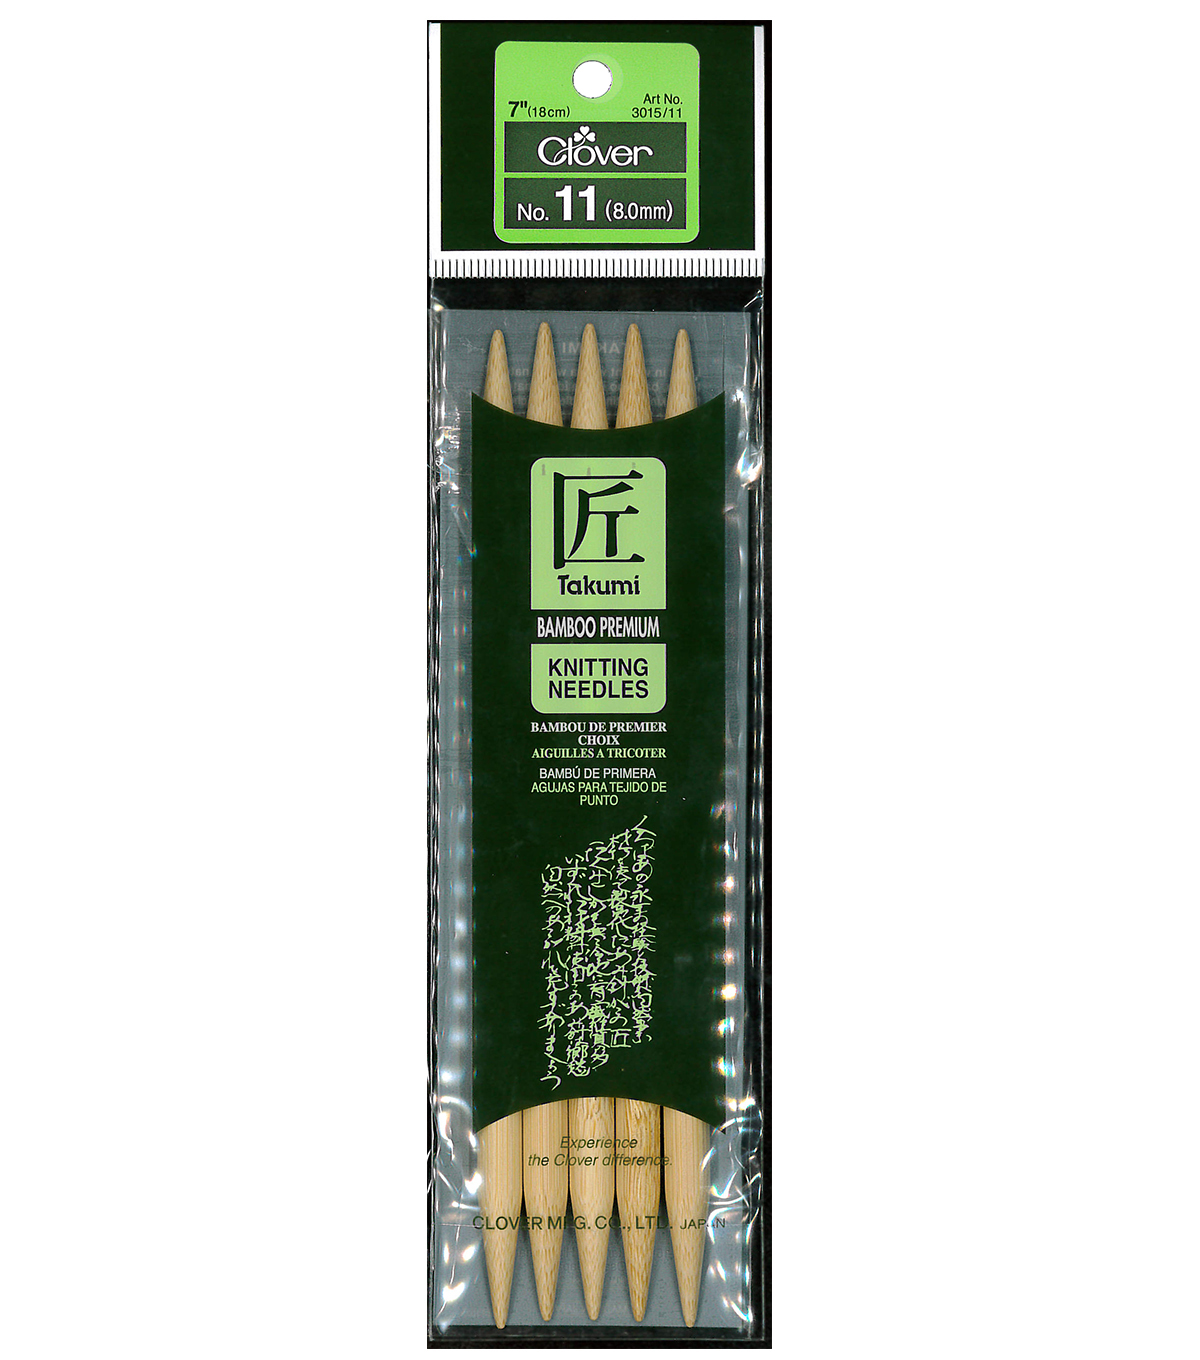 Takumi Bamboo Double Point Knitting Needles 7\u0022 5/Pkg-Size 11/8mm